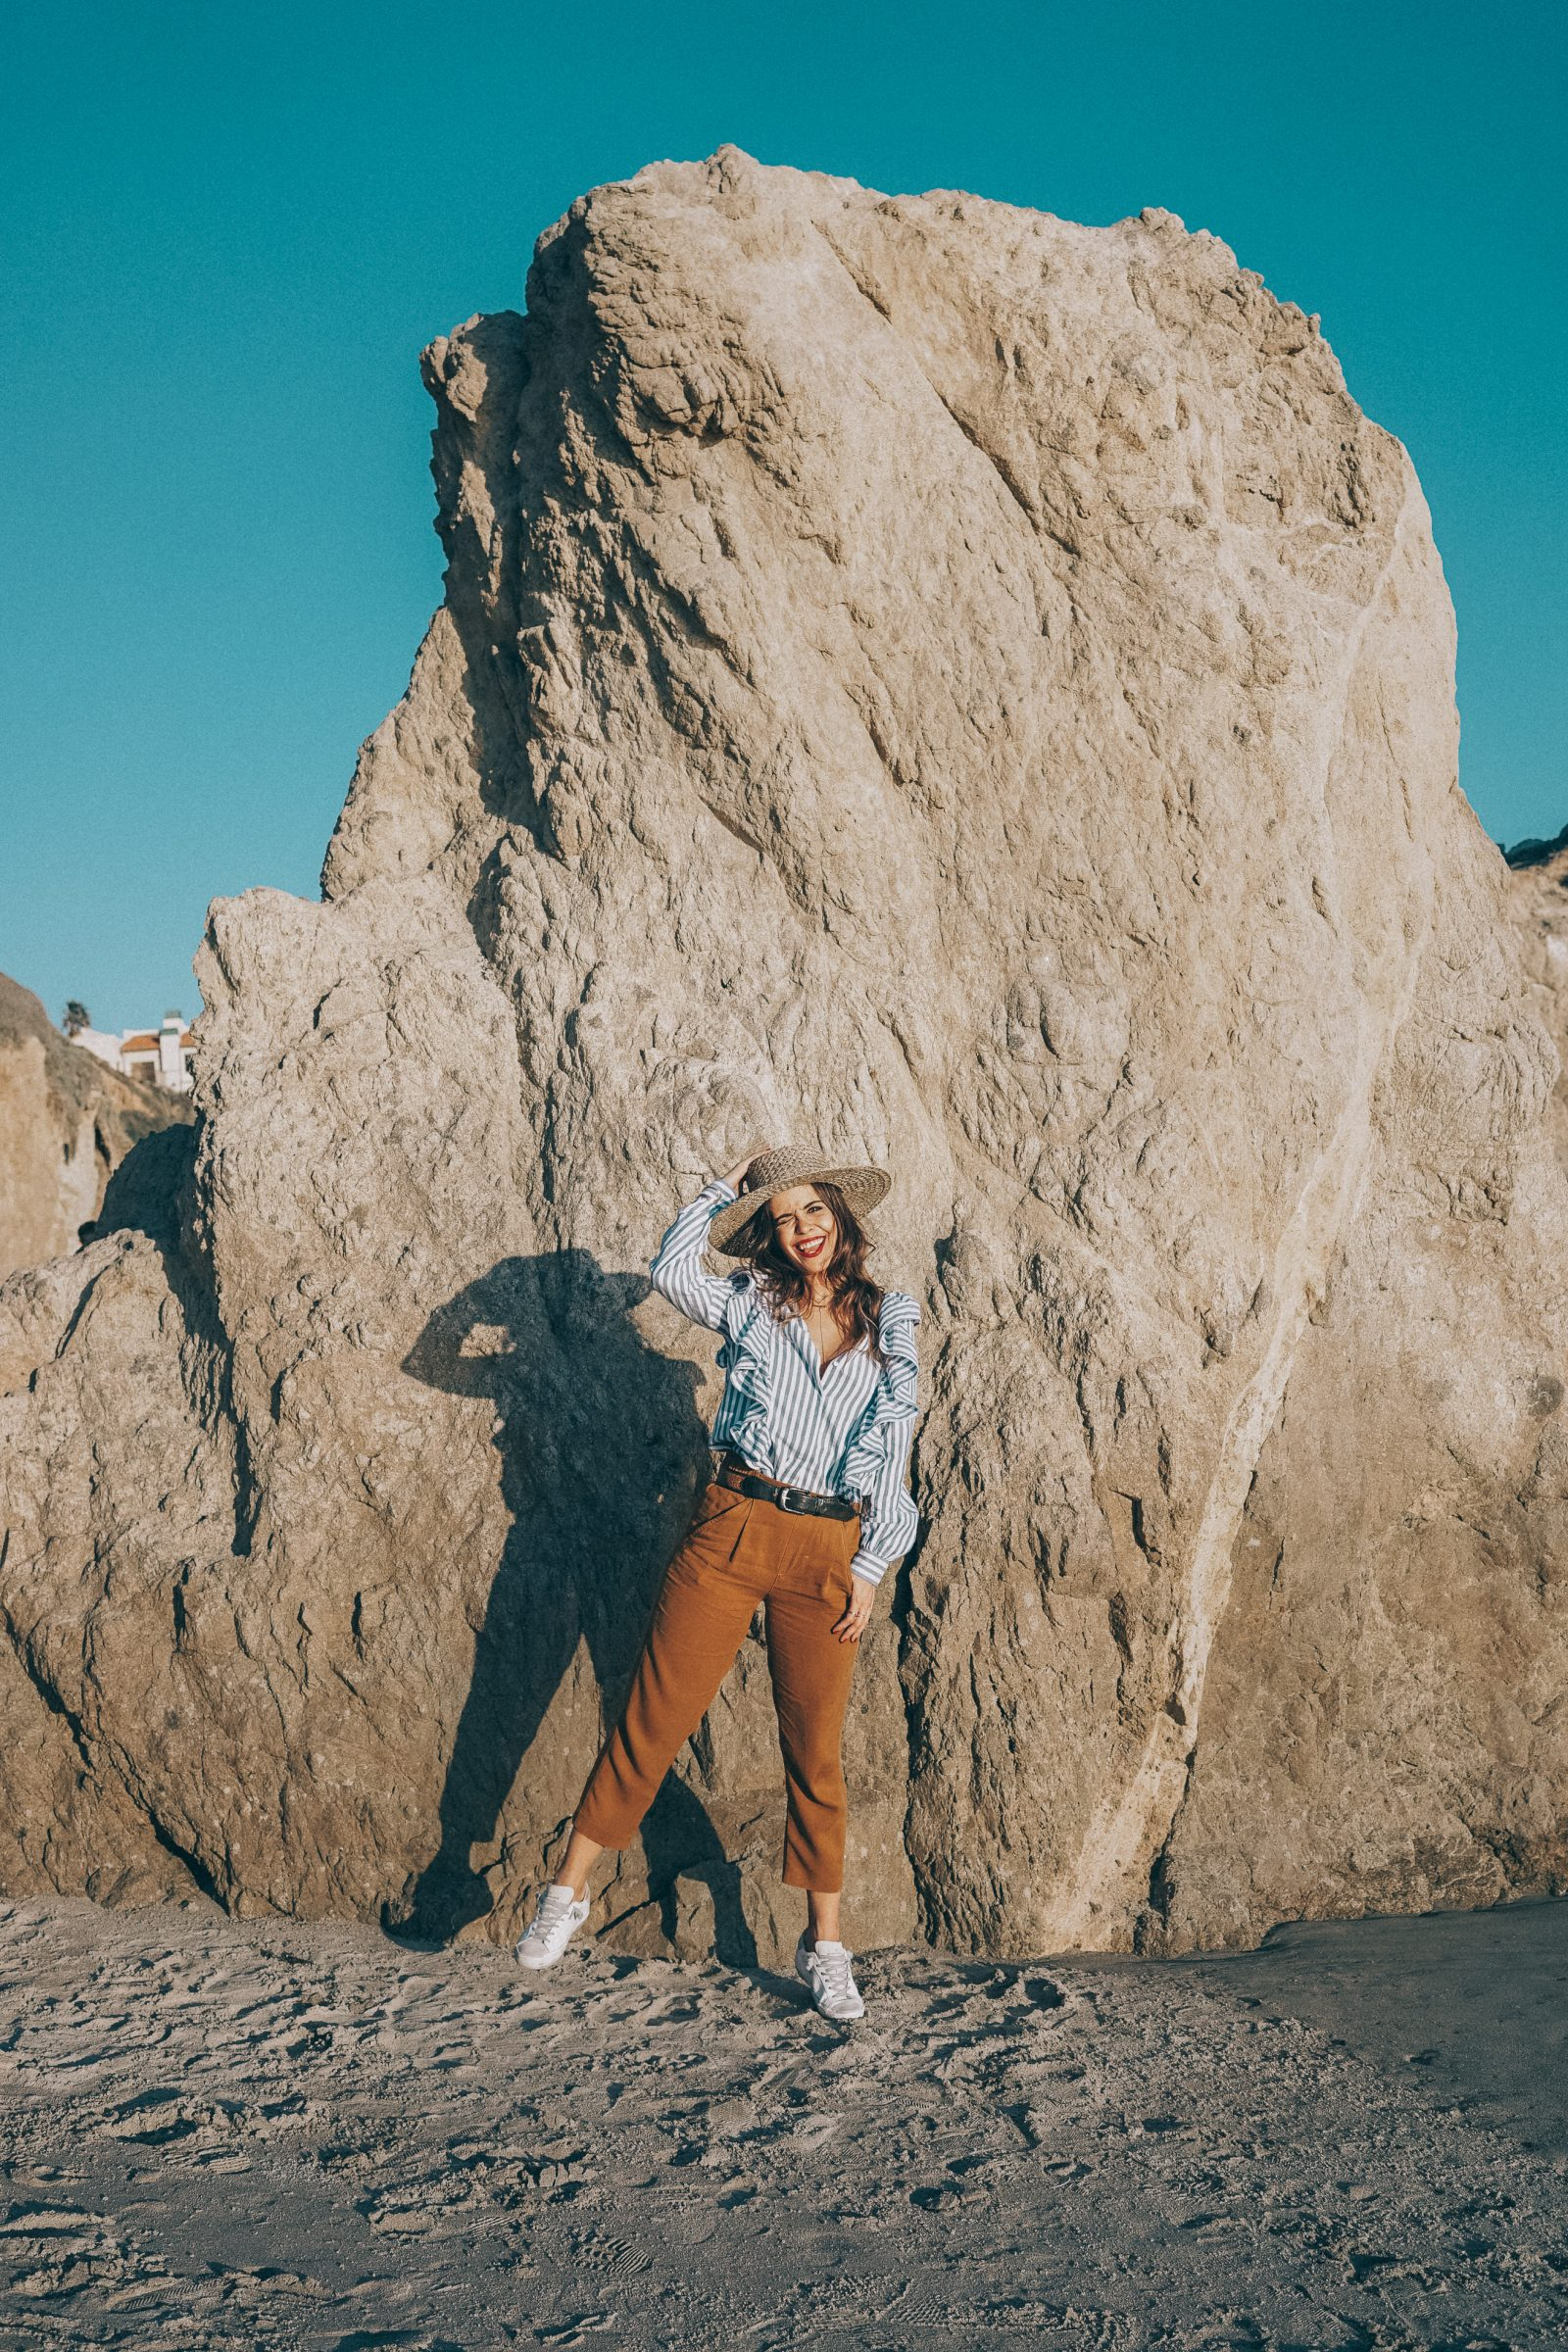 stripped_blouse-camel_trousers-lack_of_color_hat-wanderlust_jewels-matador_beach-malibu-golden_goose_sneakers-street_style-collage_vintage-129